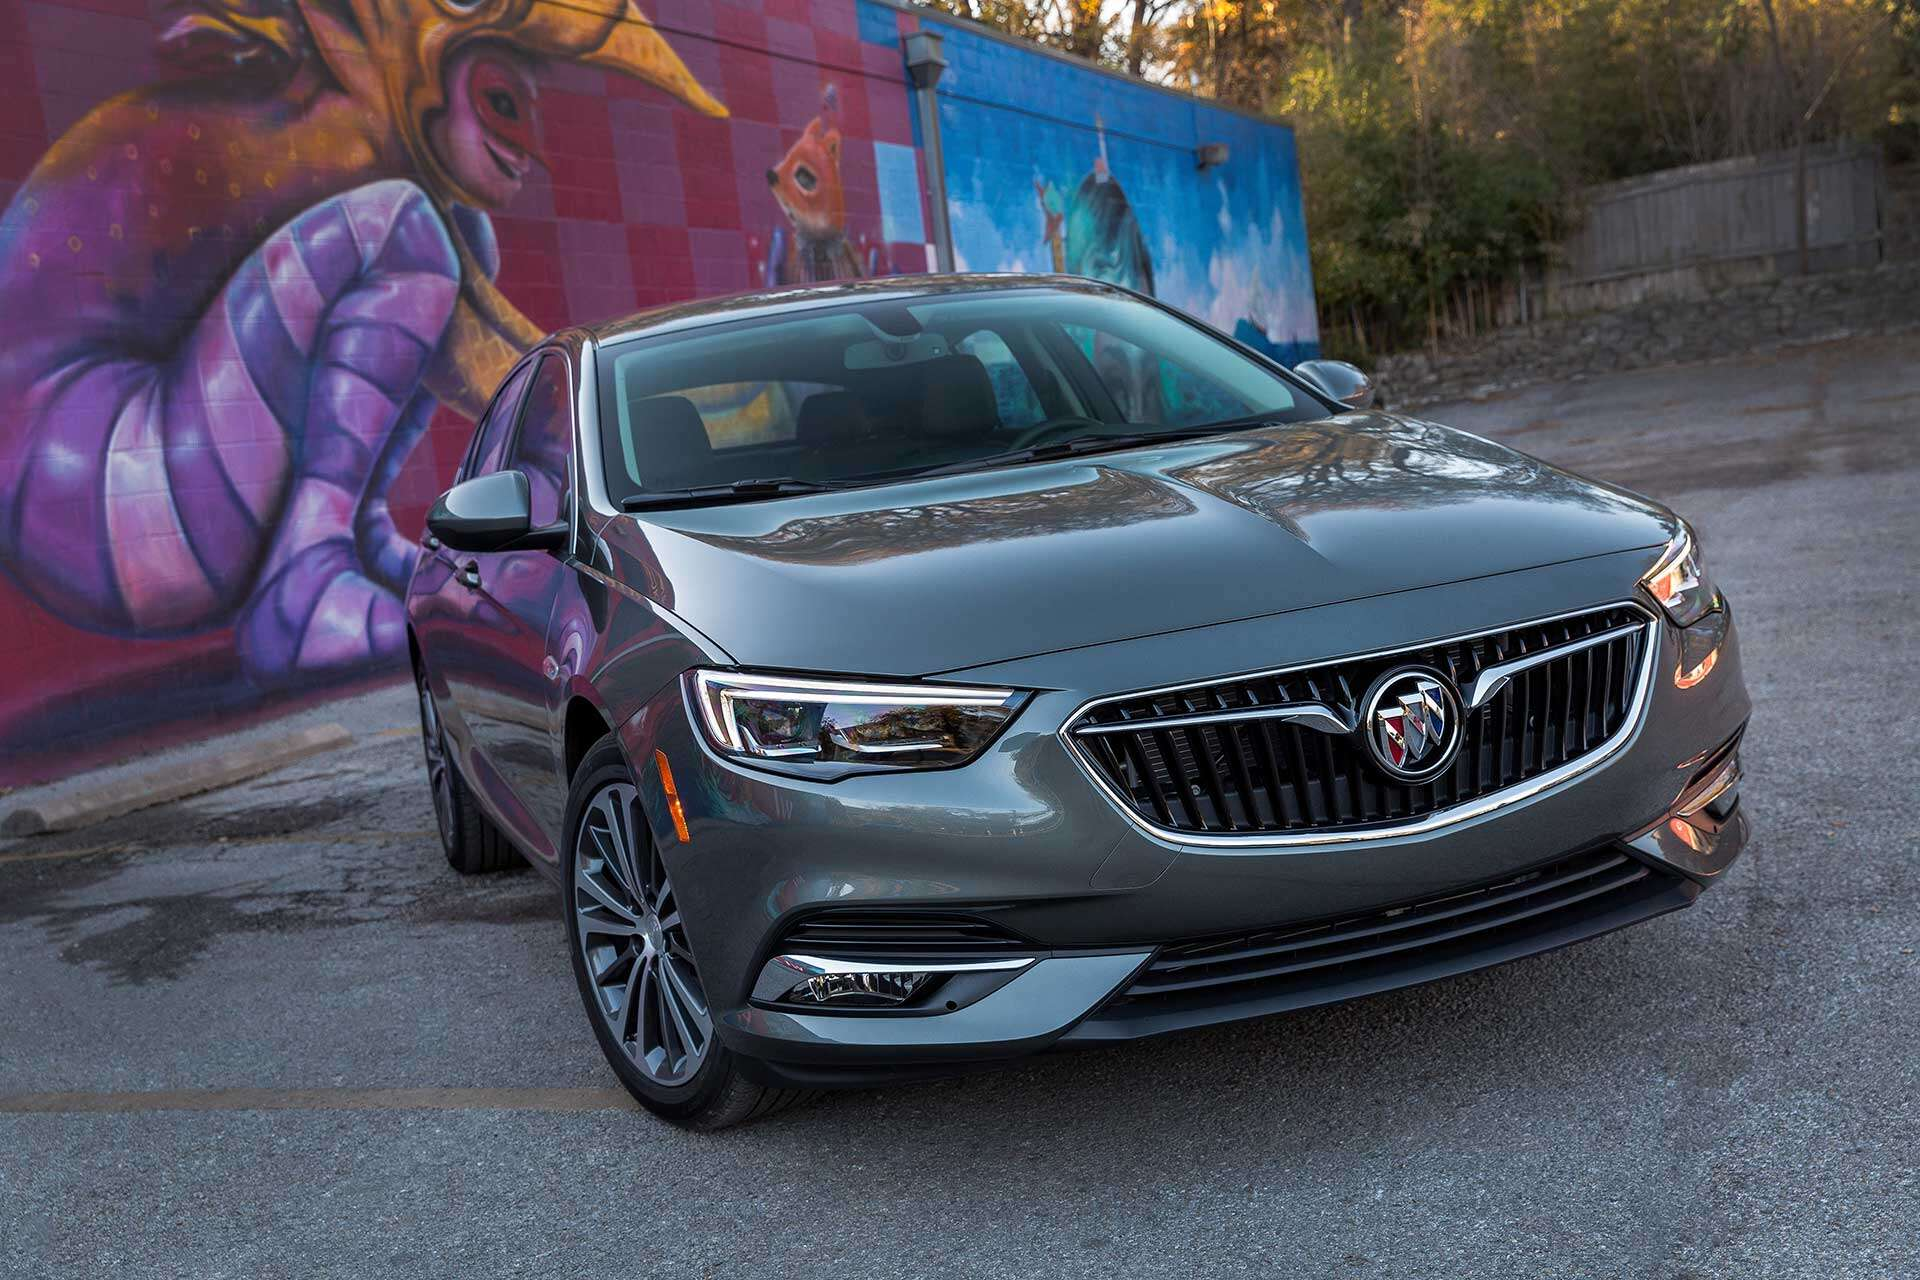 2018 Buick Regal Review A Fine Car If Not Quite Fit For A King